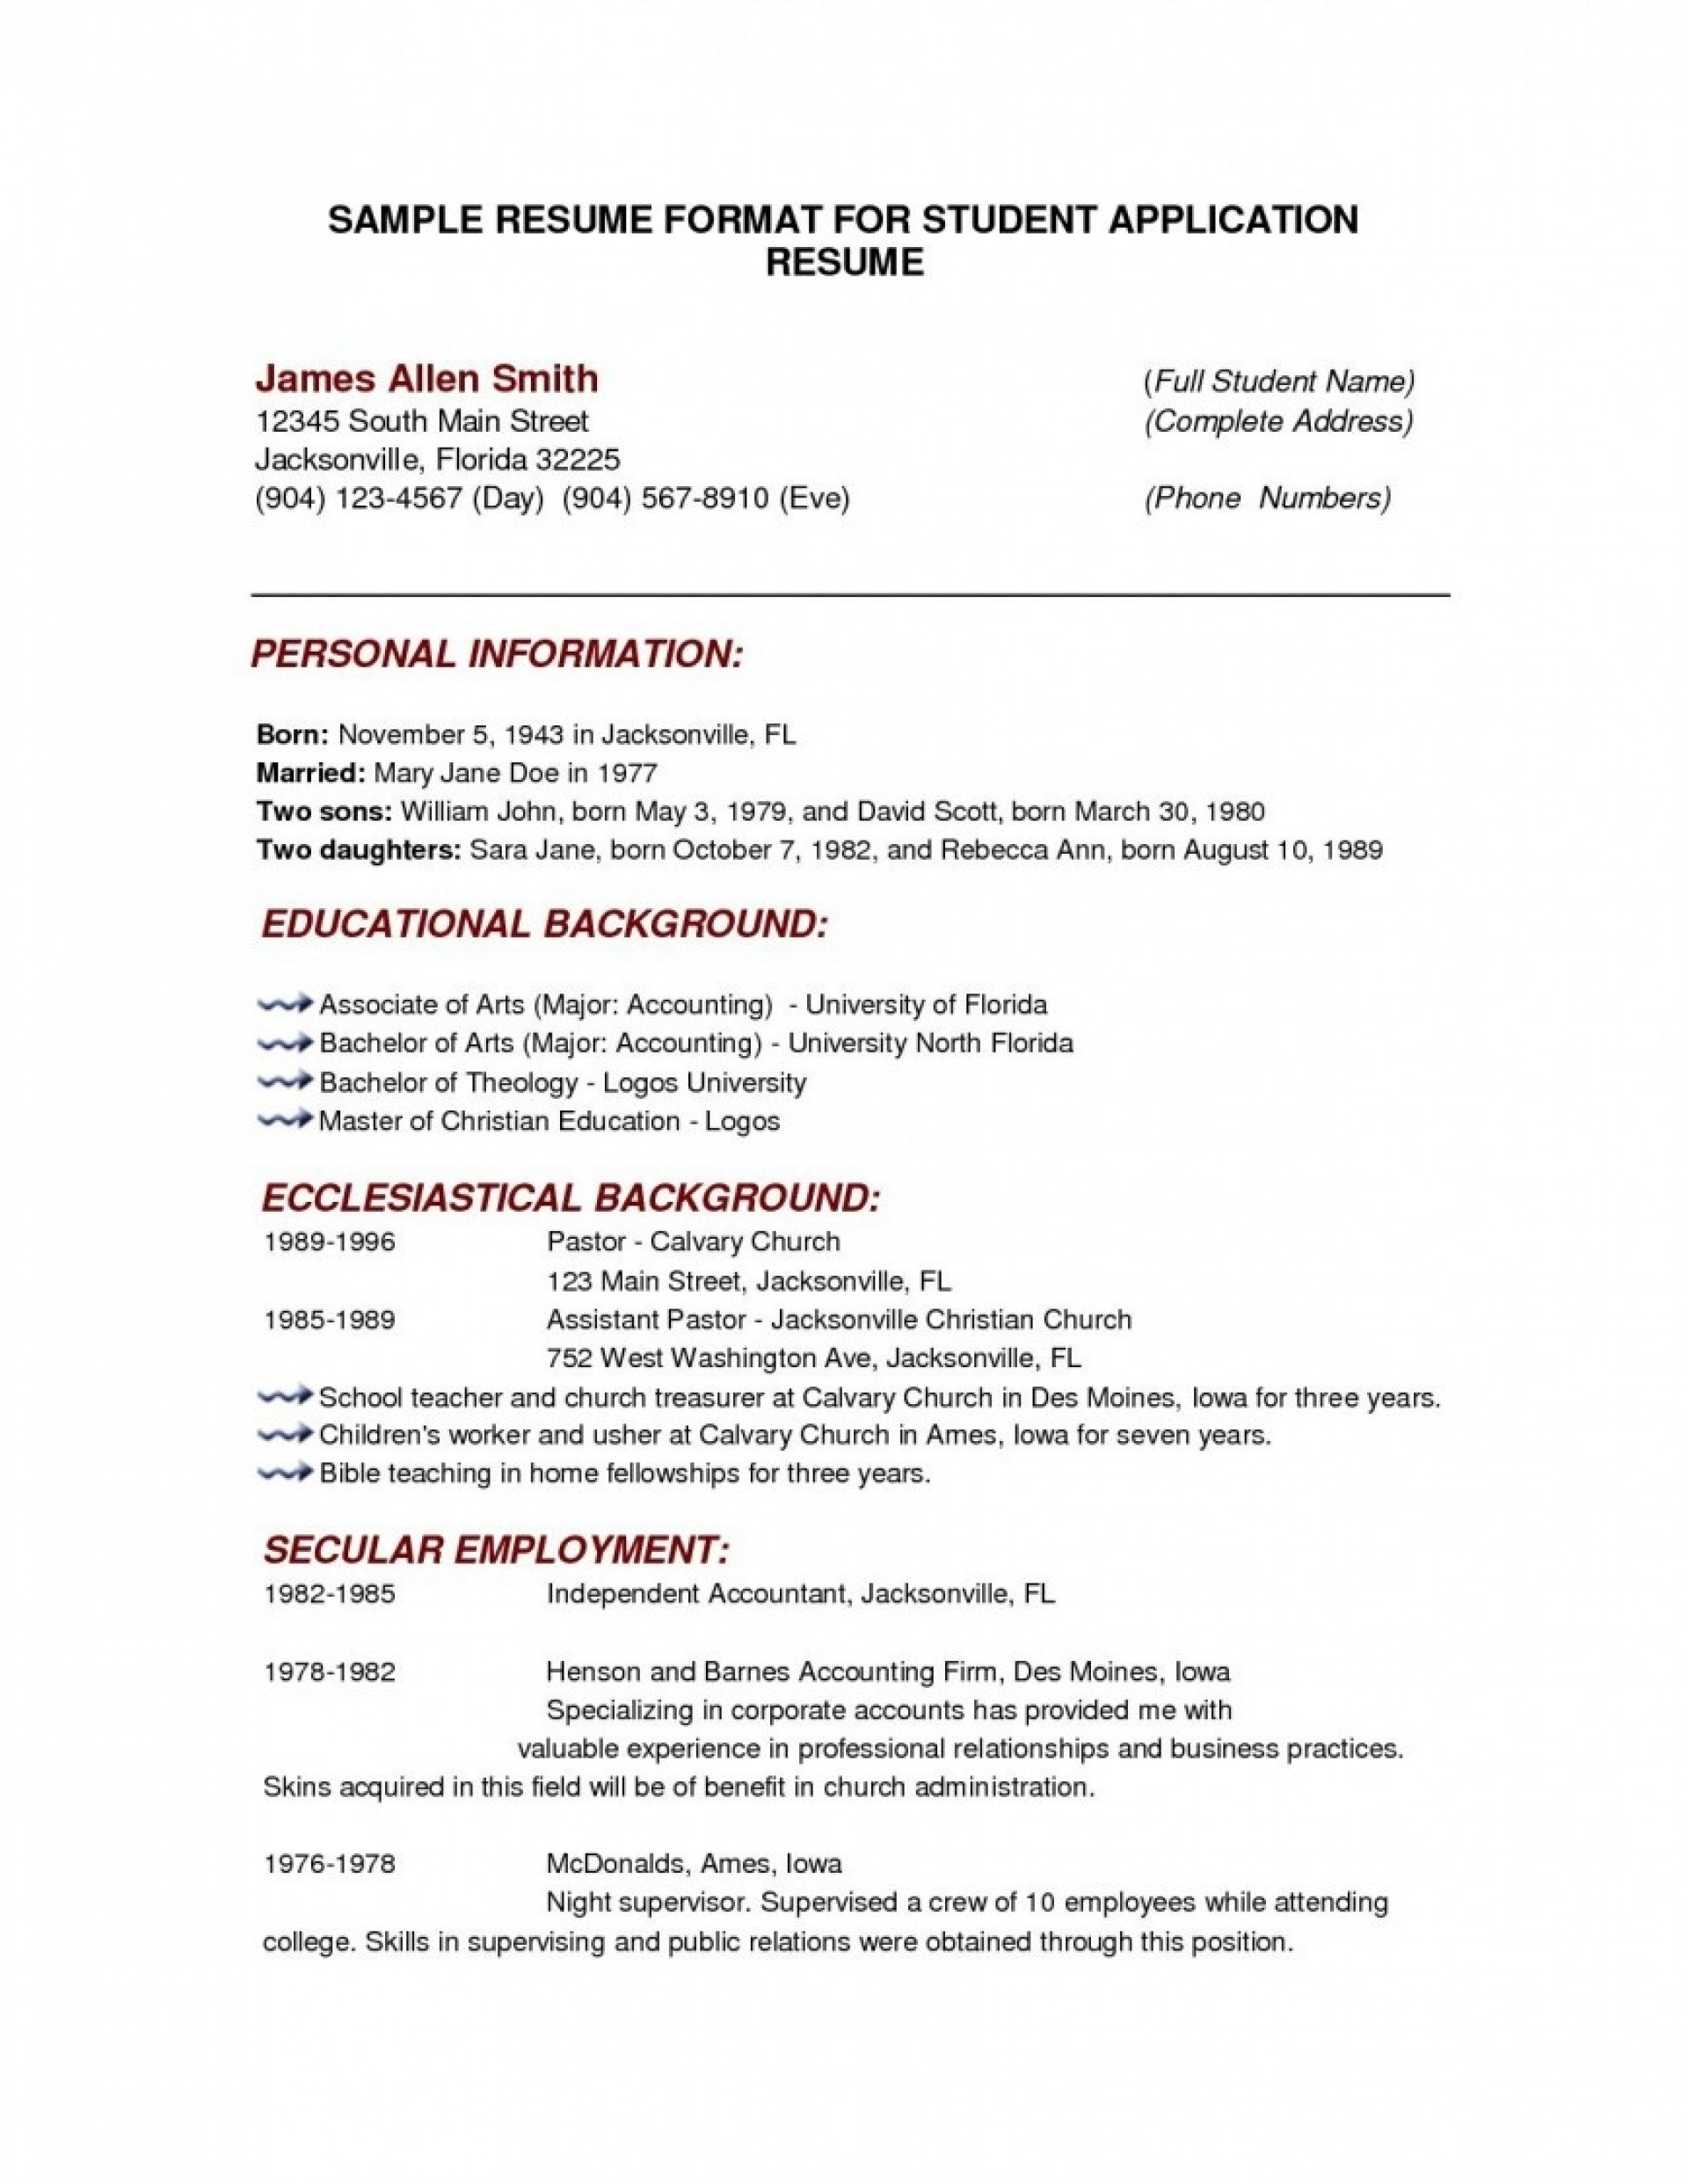 000 Outstanding College Admission Resume Template Highest Quality  Templates App Sample Application Microsoft Word1920